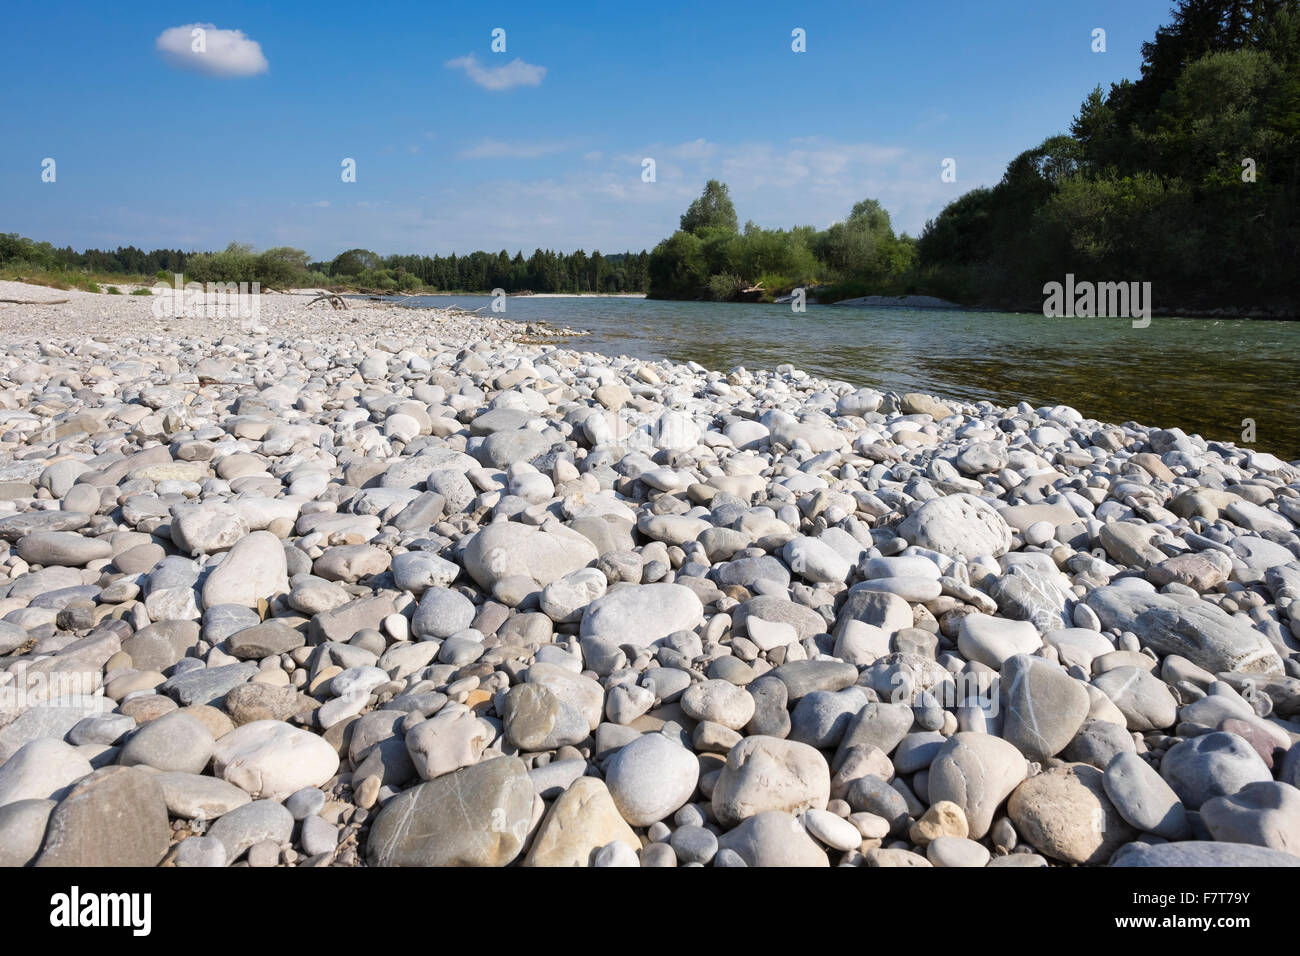 Pebble riverbank by the river Isar, nature reserve Isarauen at Geretsried, Upper Bavaria, Bavaria, Germany - Stock Image